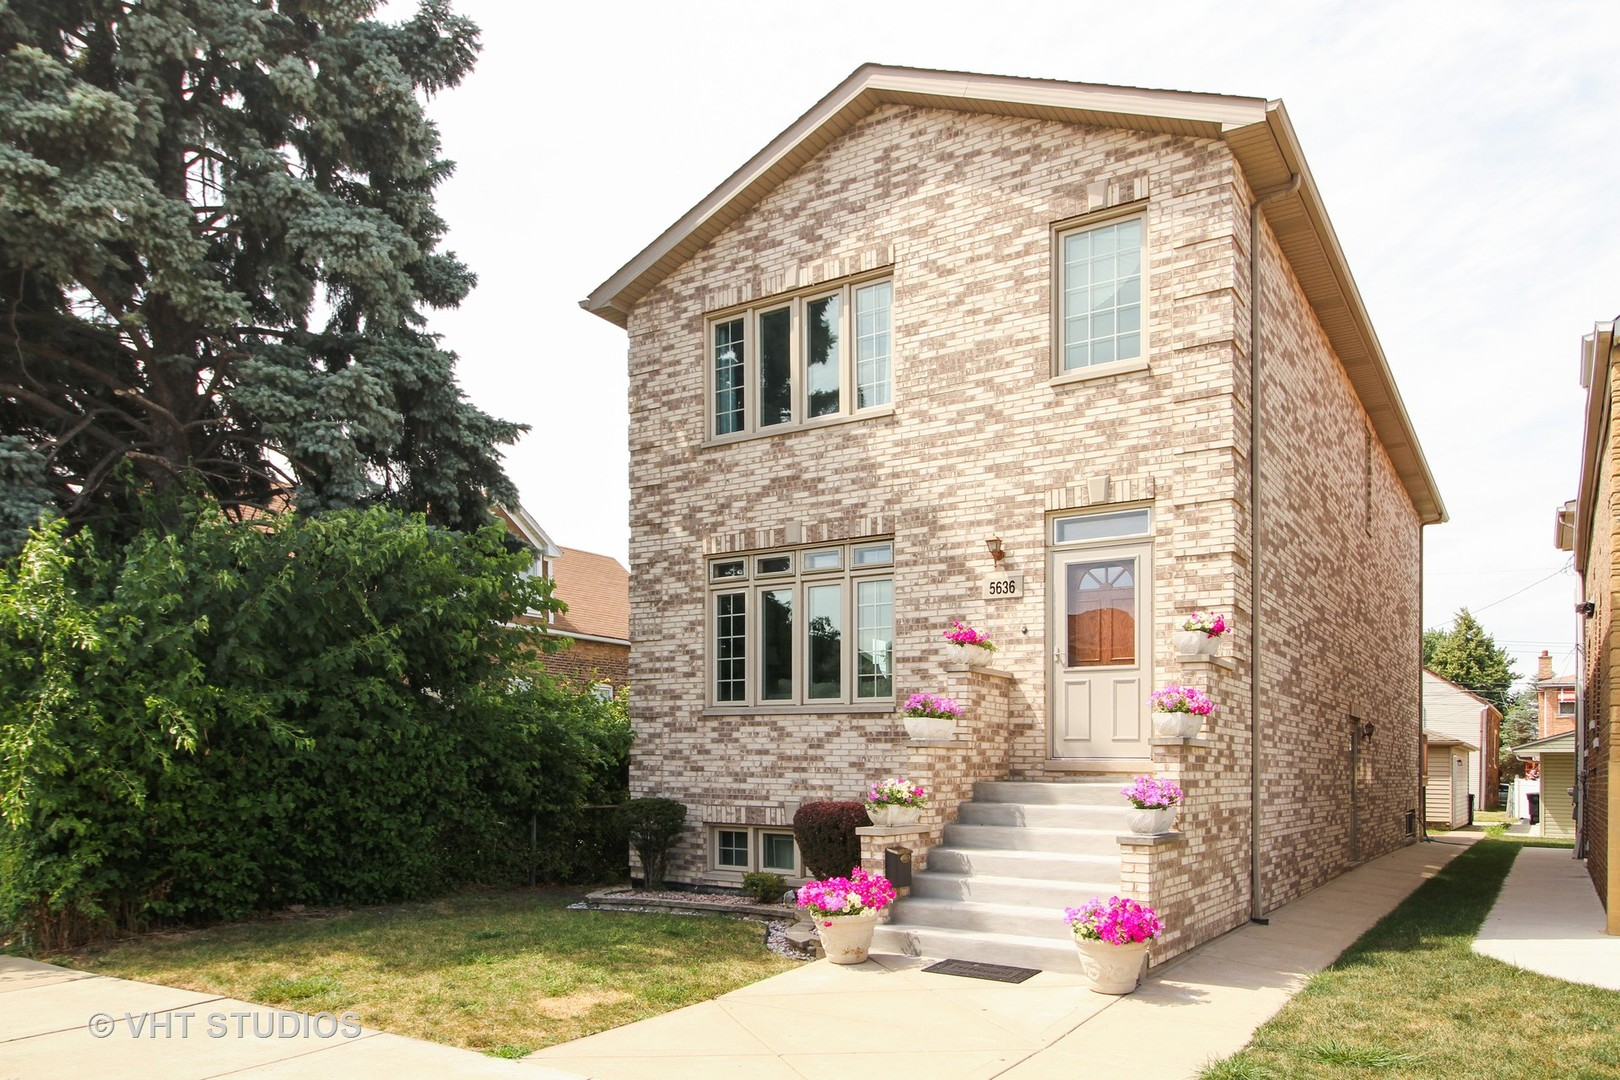 5636 WEST 64TH STREET, CHICAGO, IL 60638